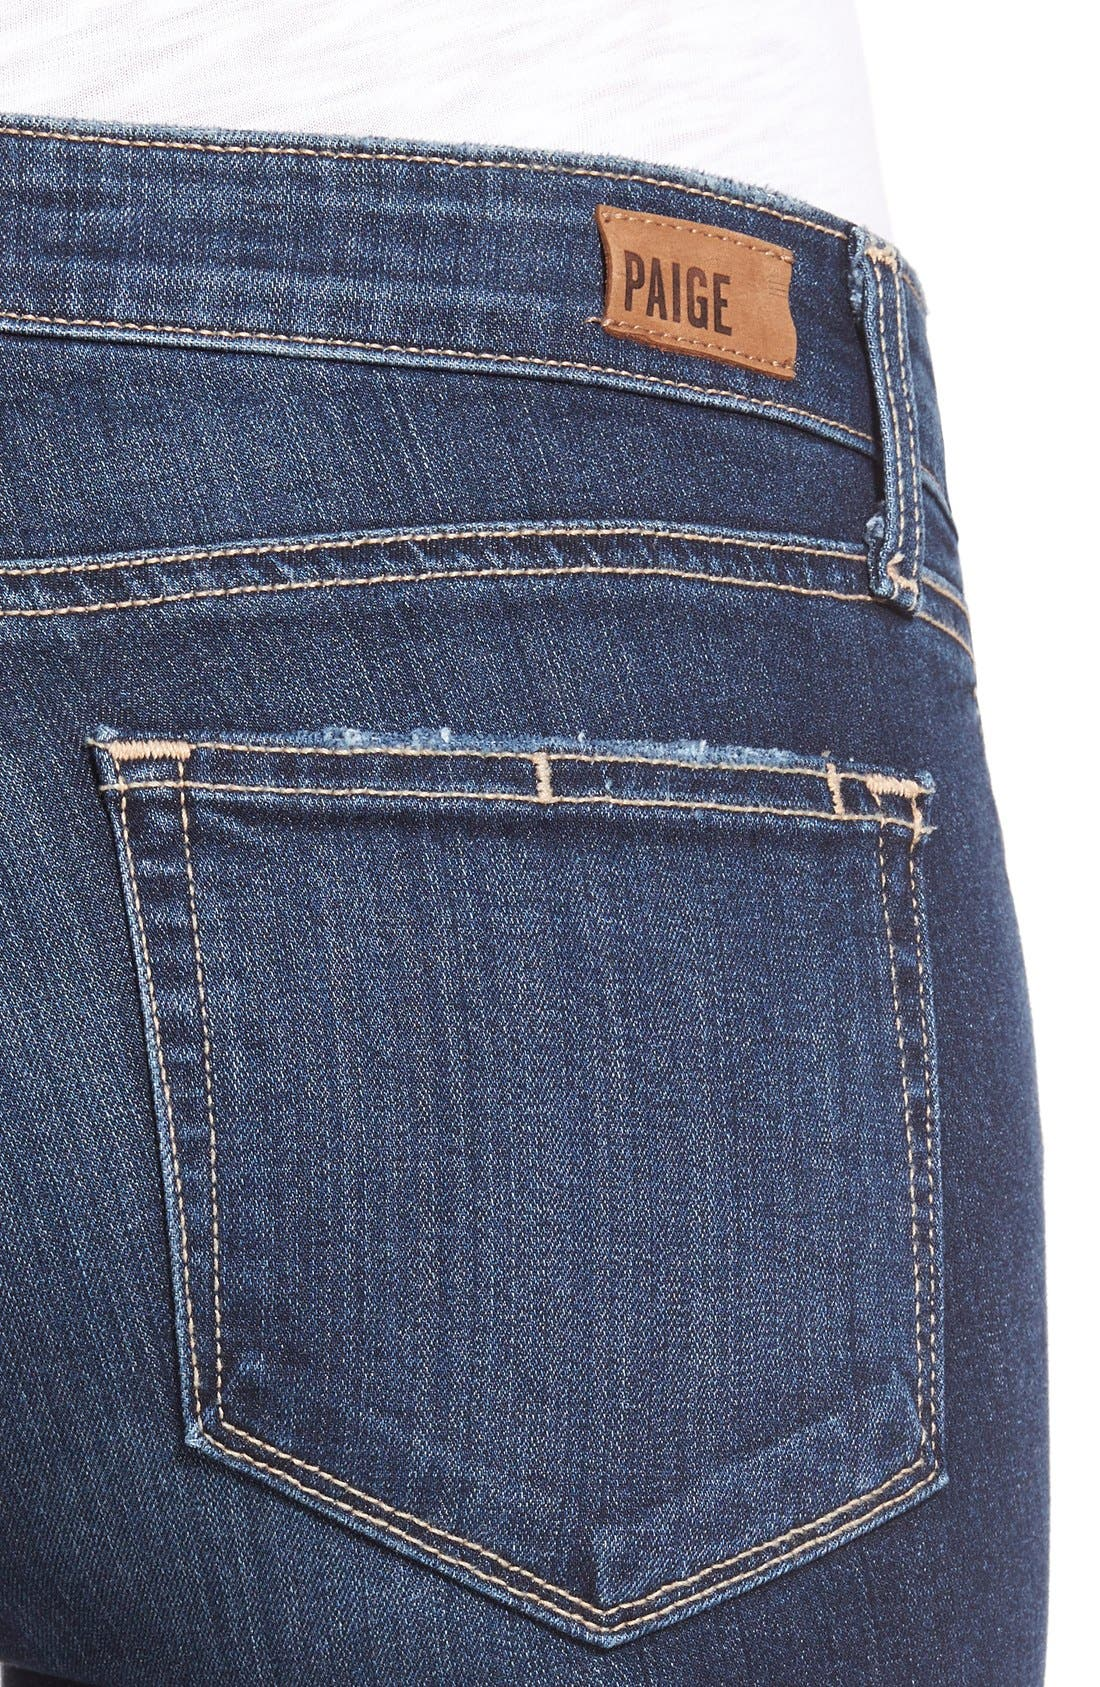 Alternate Image 4  - Paige Denim 'Skyline' Ankle Peg Jeans (Elia Deconstructed)